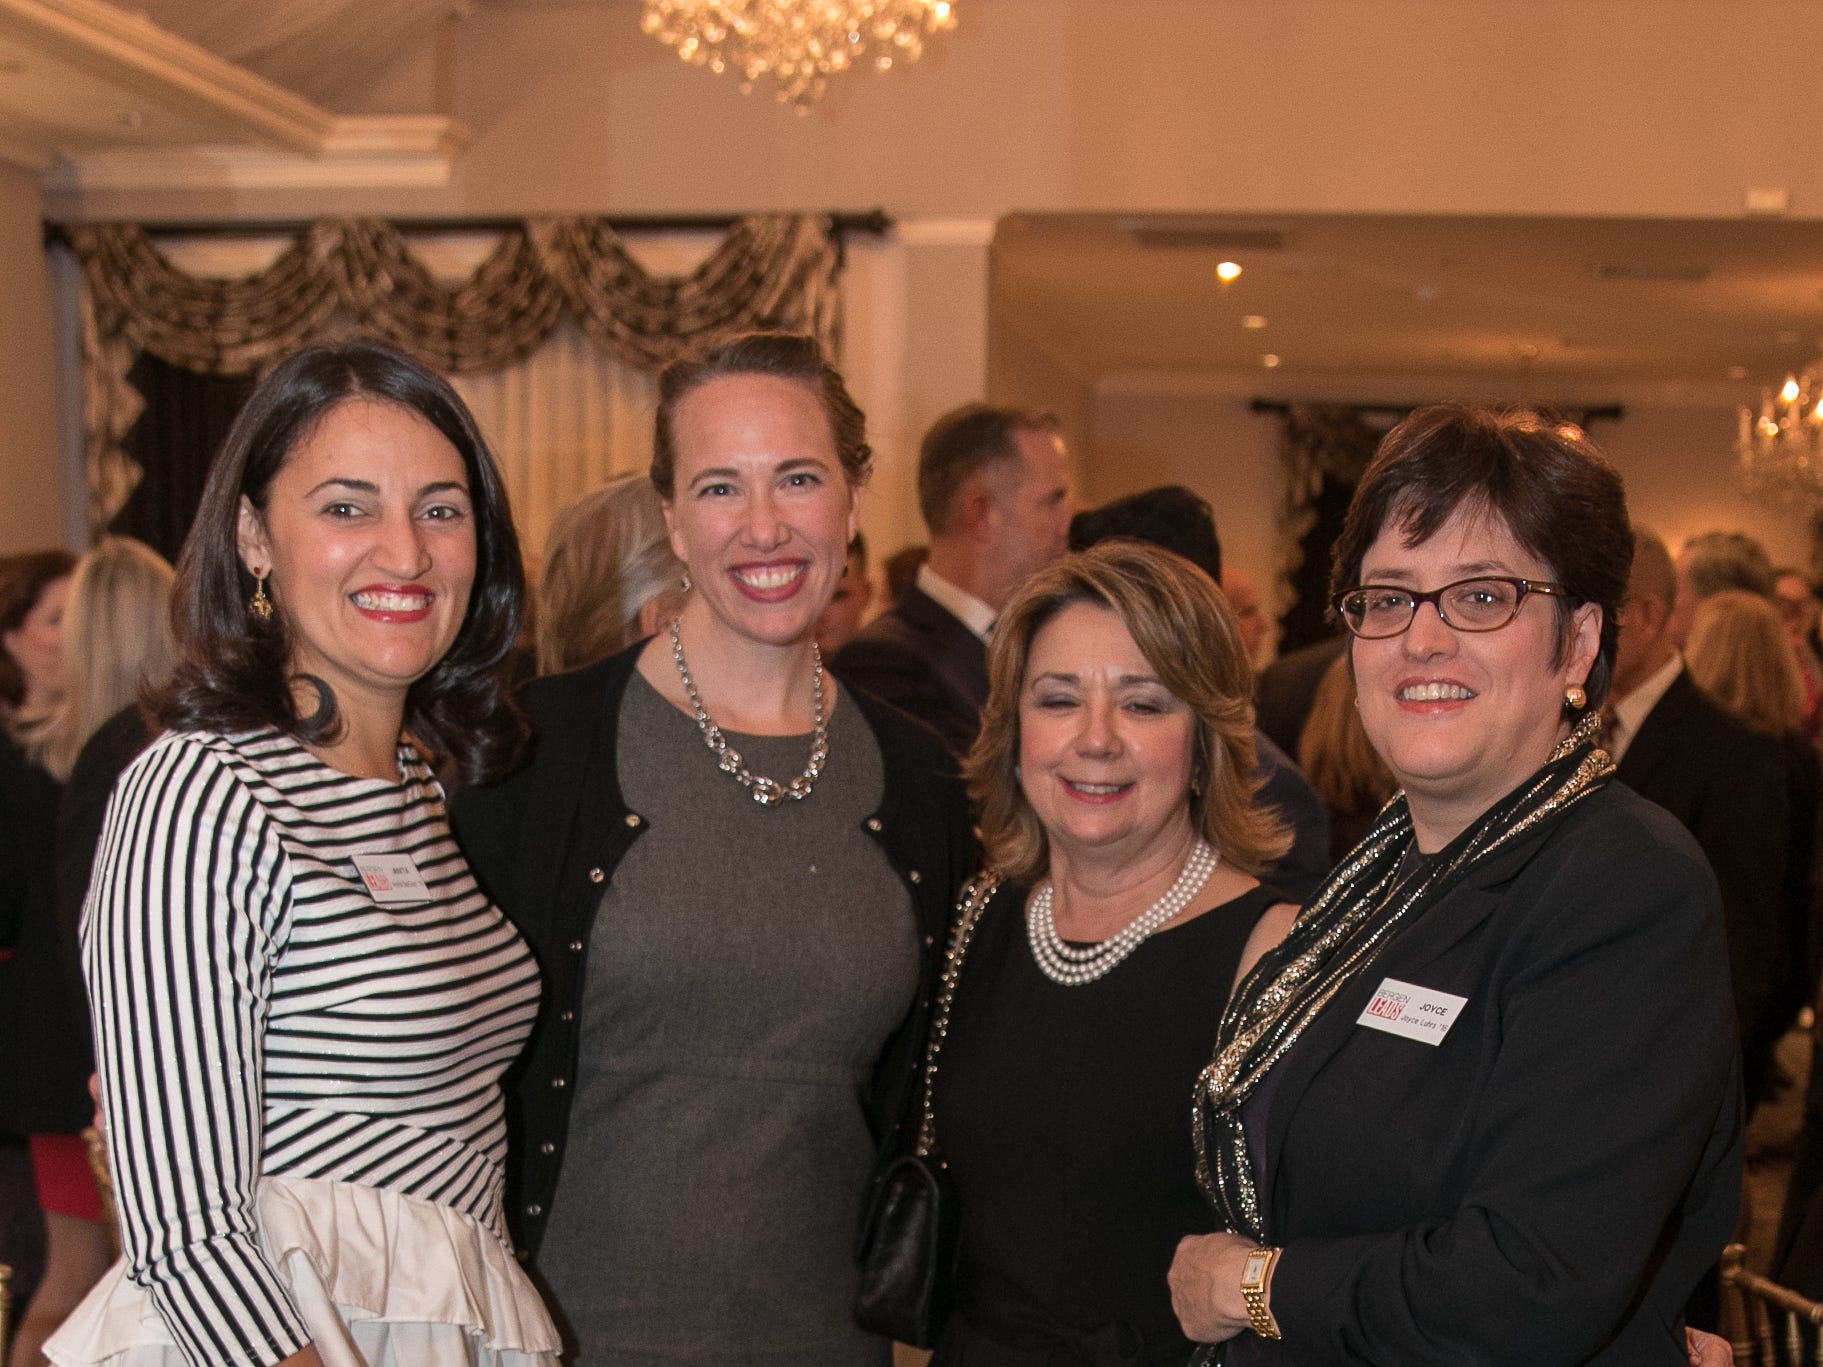 Anita DaSilva, Kimberly Malone, Marina Chassavis, Joyce Luhrs. The Bergen Volunteer Center celebrated its 10th anniversary of the Bergen LEADS program at The Hearts of Gold Dinner and Auction at the Stony Hill Inn in Hackensack. 11/08/2018